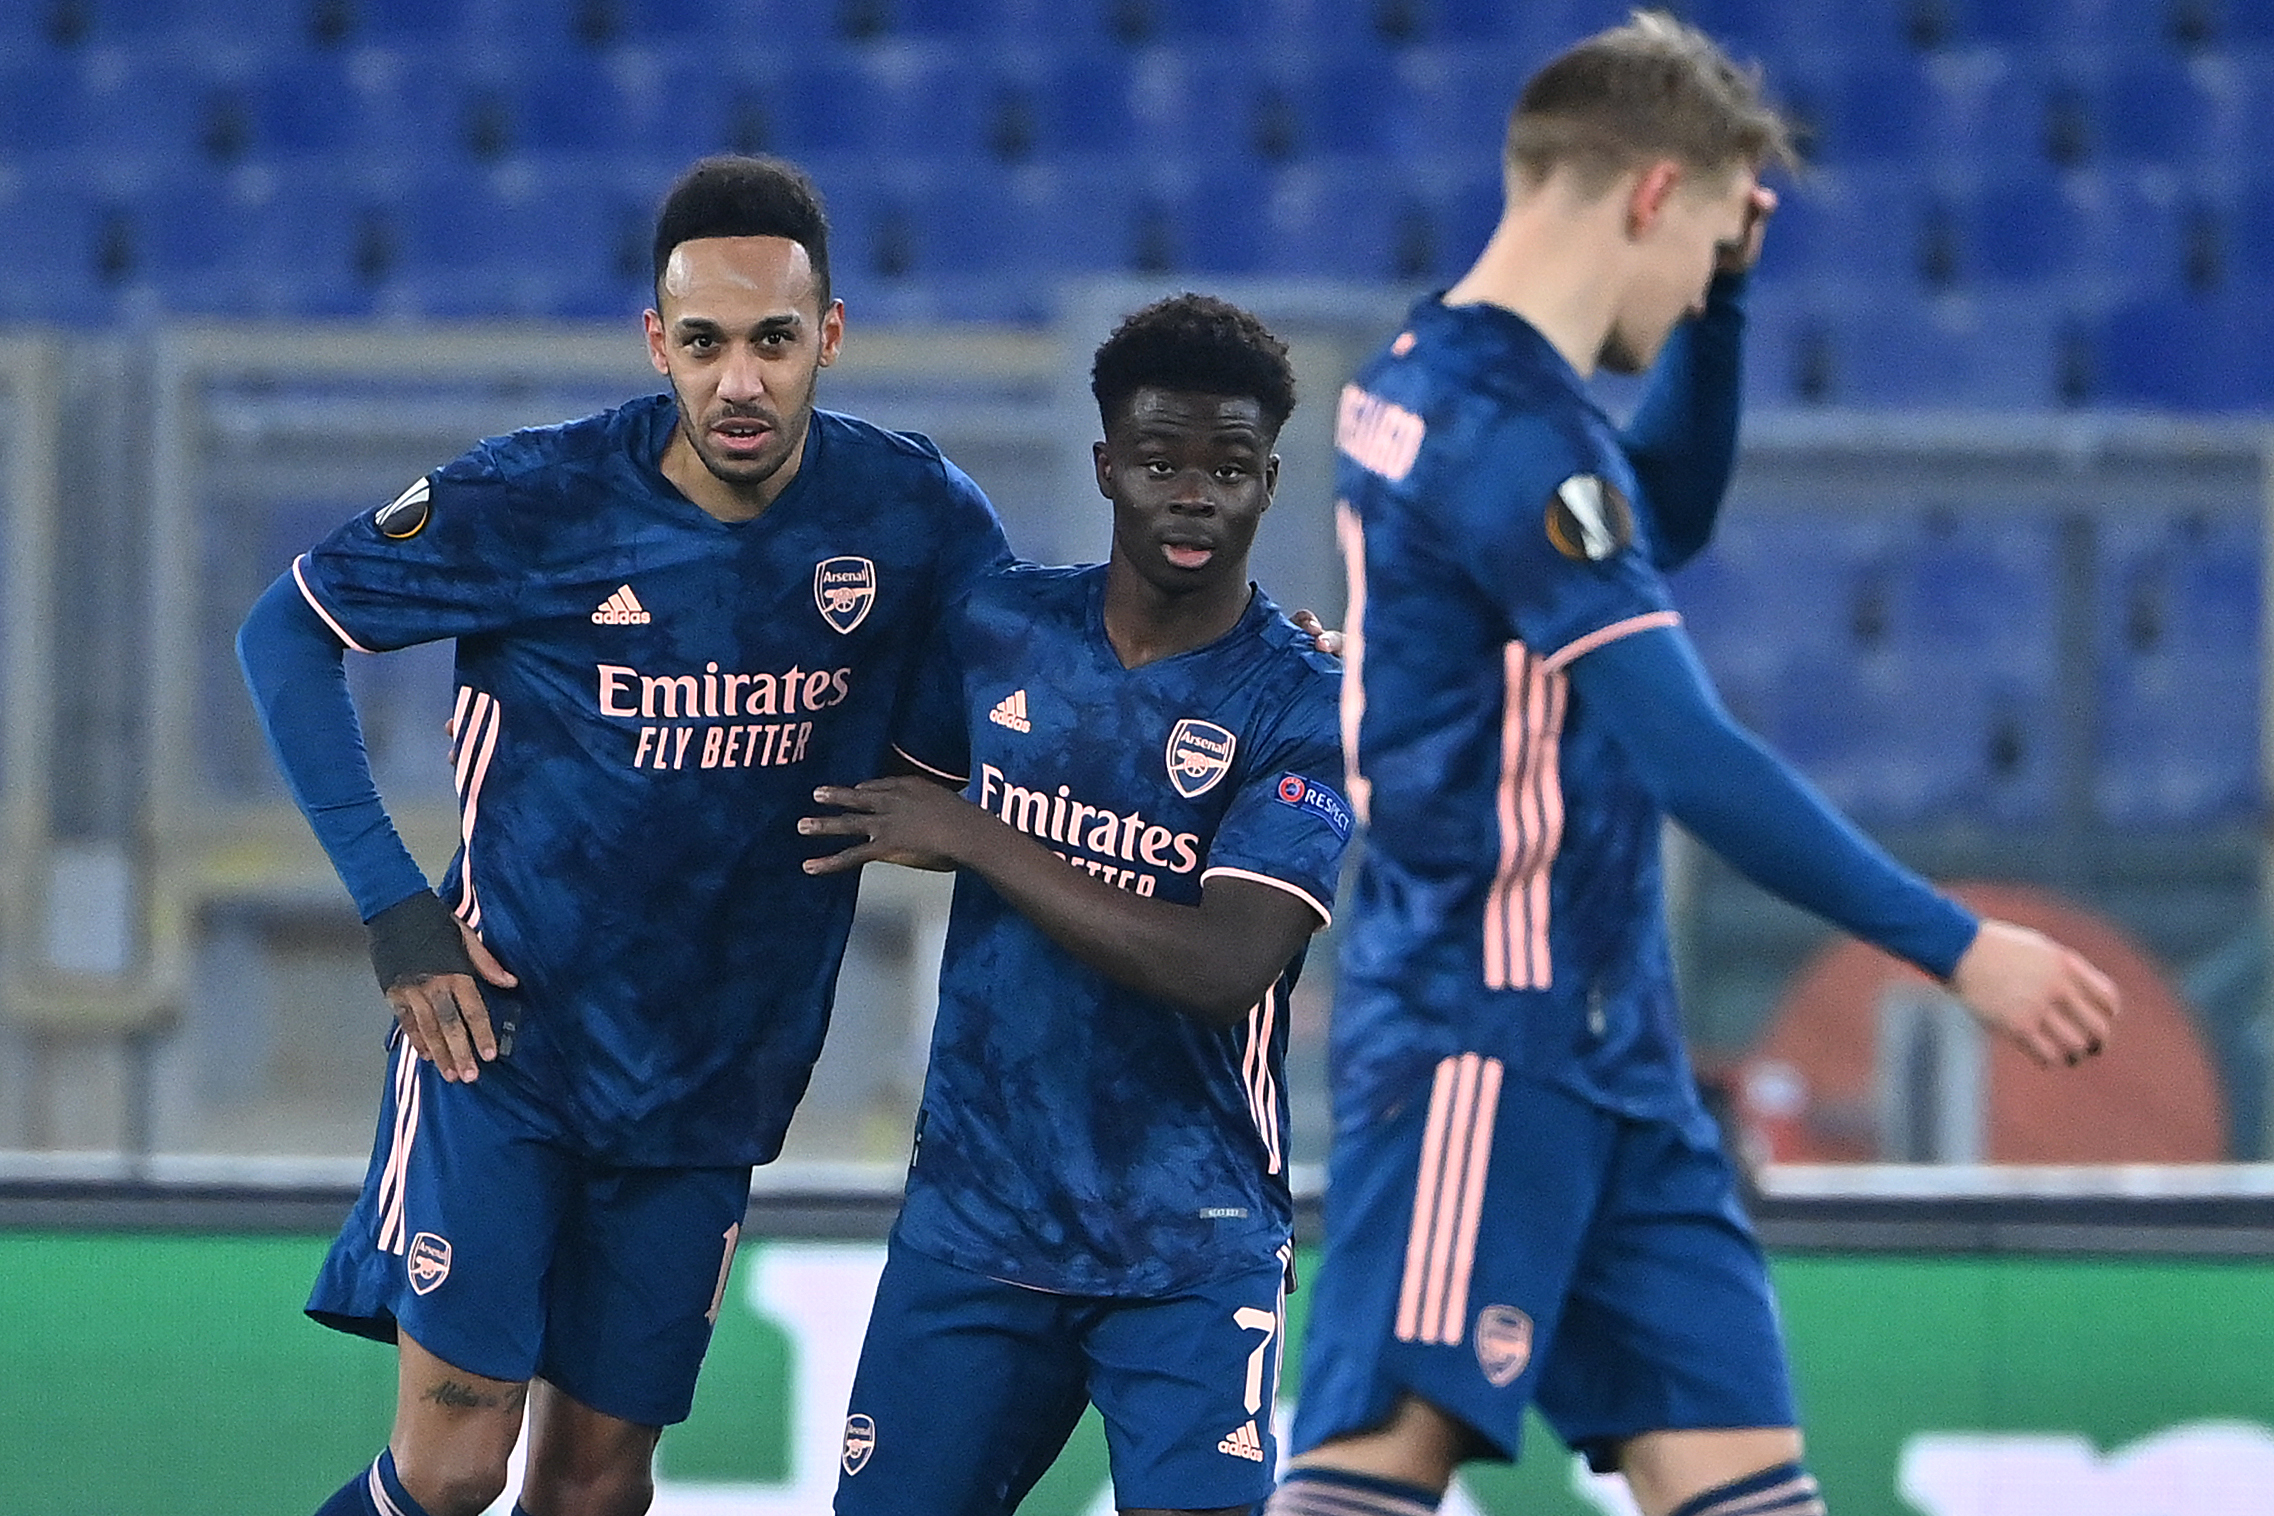 Arsenal players rated in hard-fought draw vs Benfica (Arsenal players are seen in the photo)